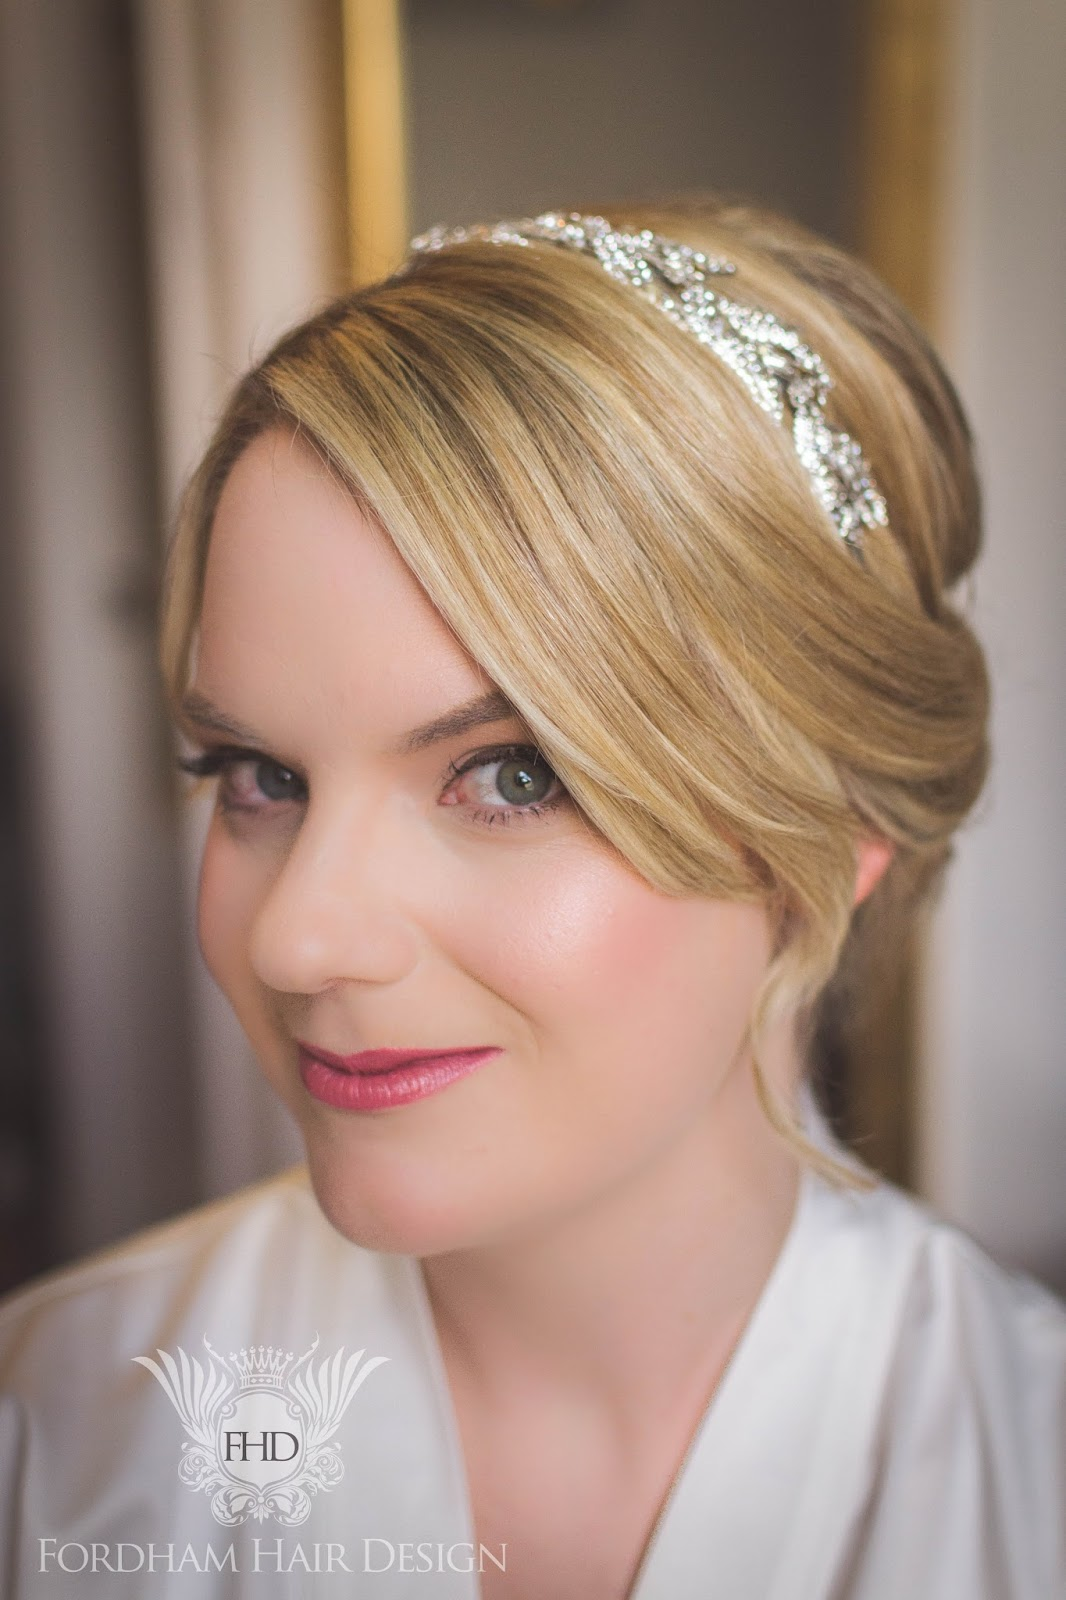 Wedding hair accessories gloucestershire -  Most Recent Brides Such A Great Fun Morning Of Styling Hair For Her And Bridesmaids For Her Wedding At Eastington Park Near Stroud In Gloucestershire